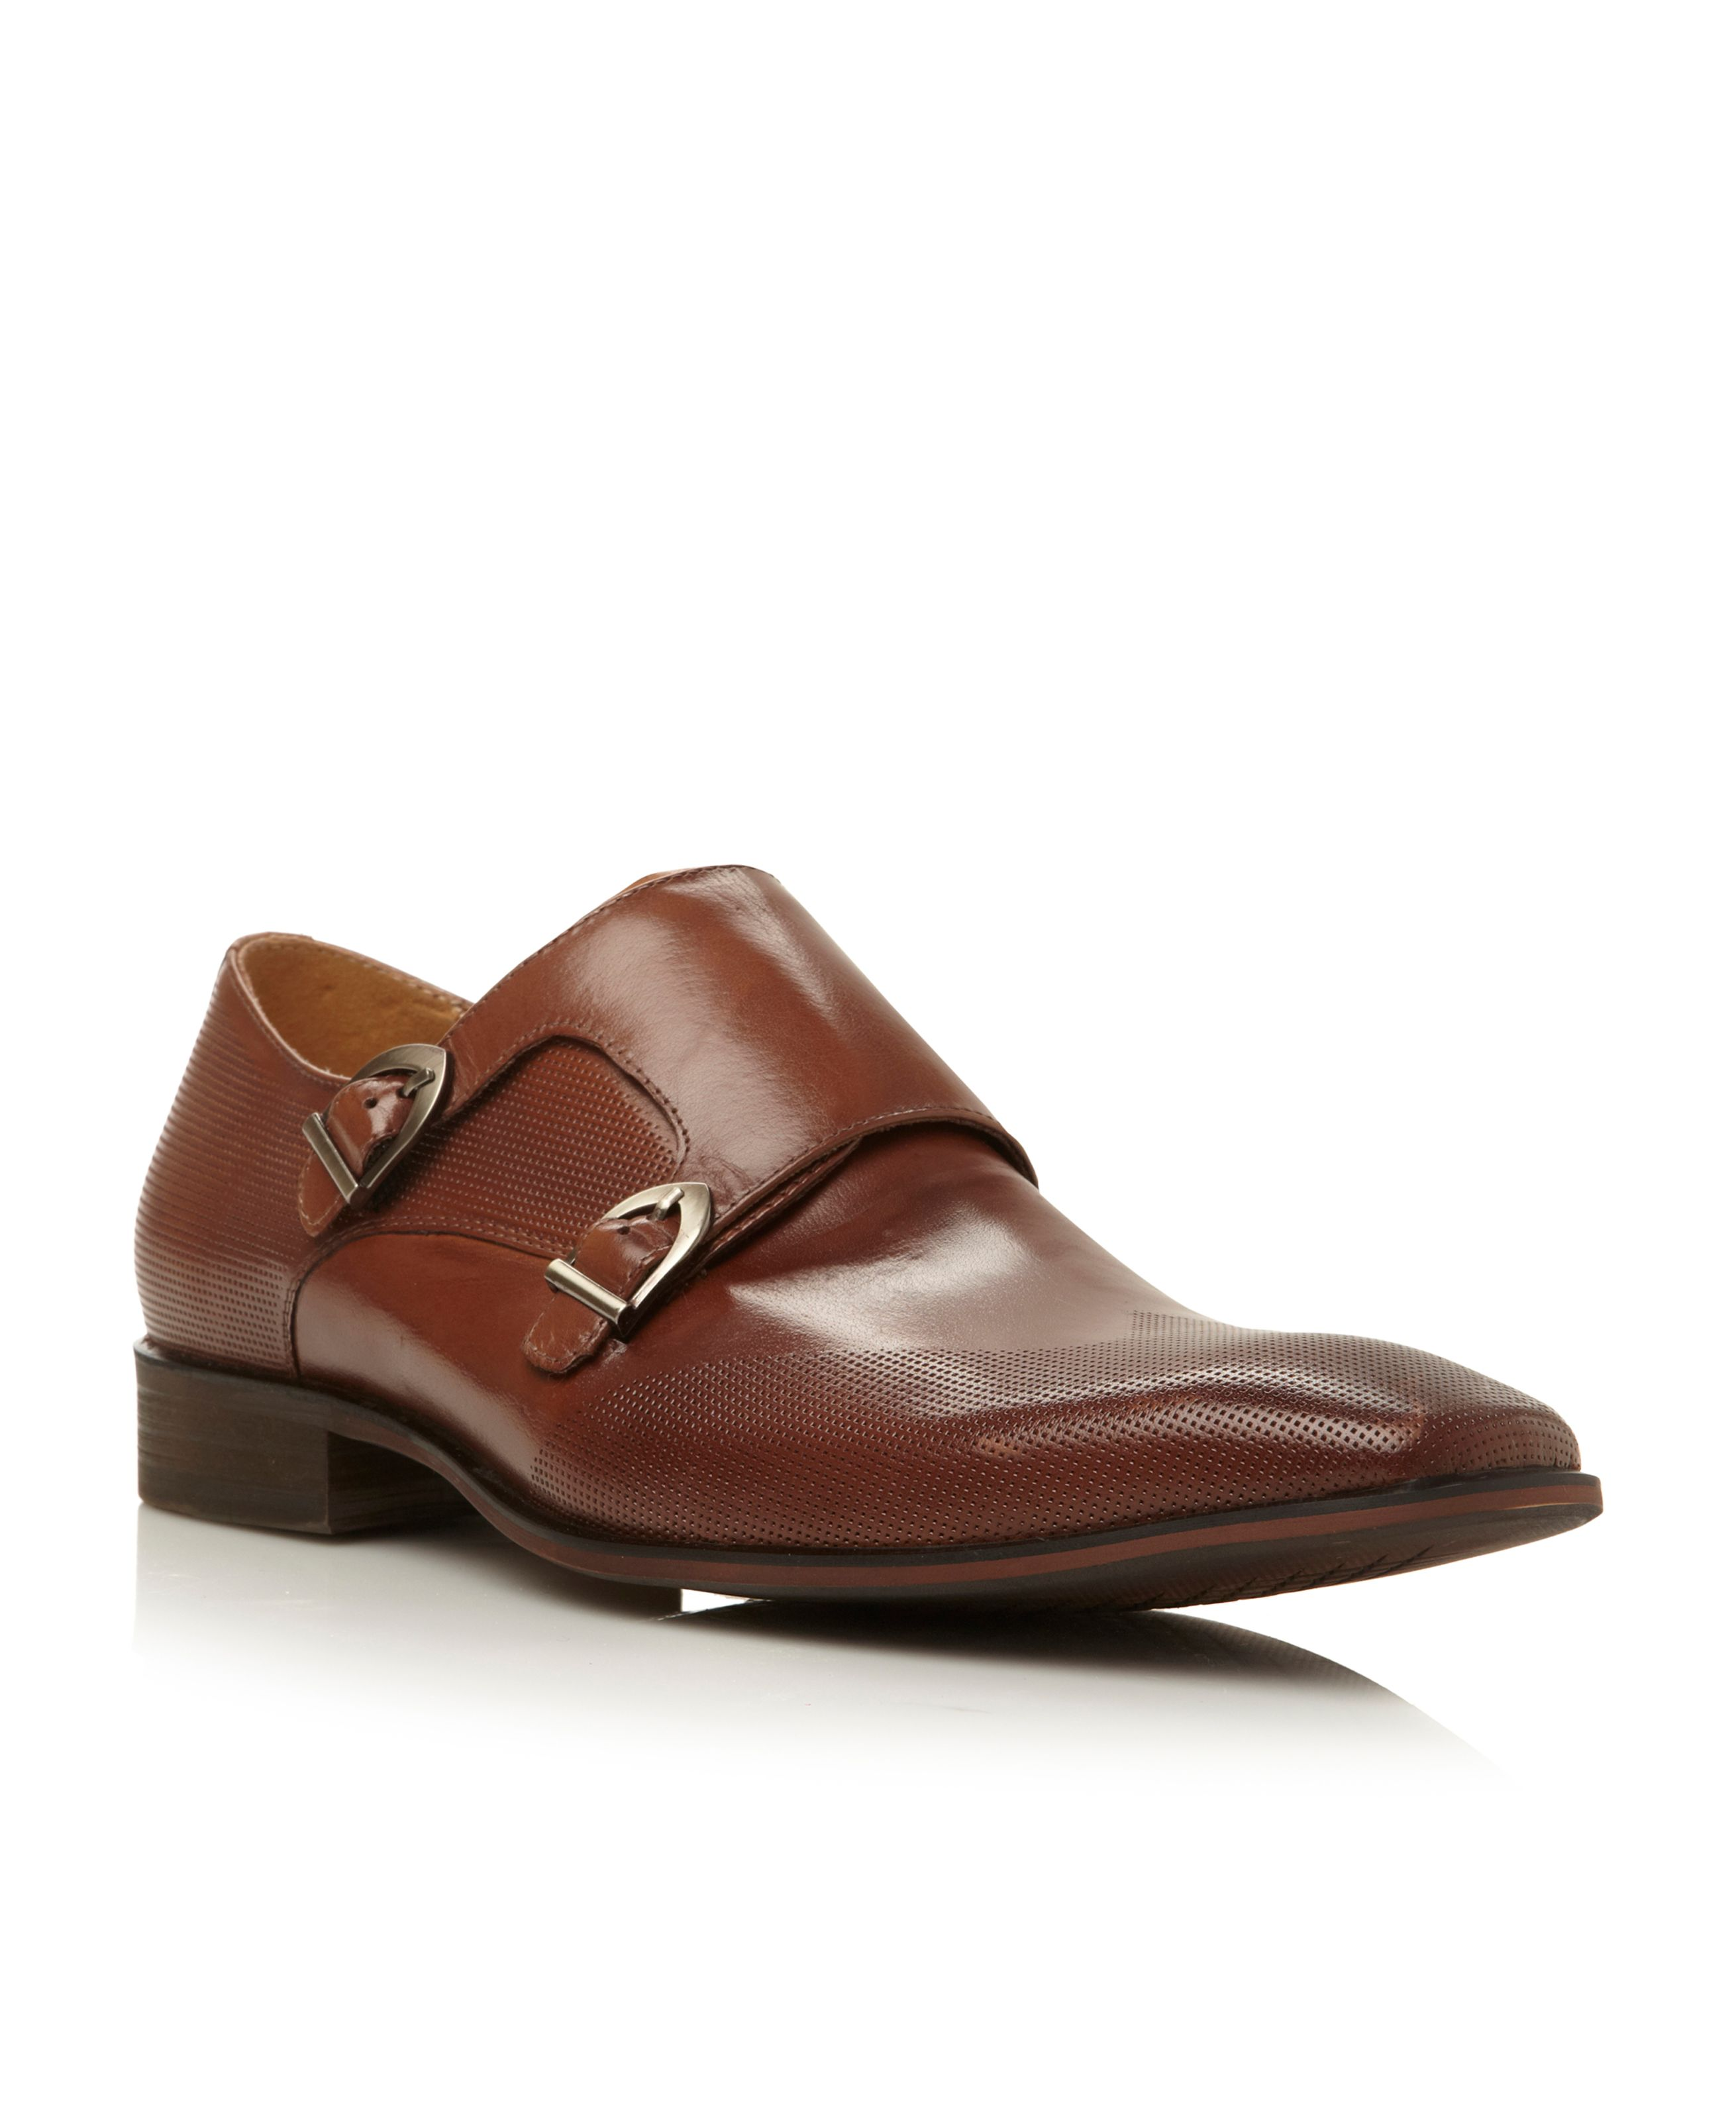 Jerney buckle double monk formal shoes